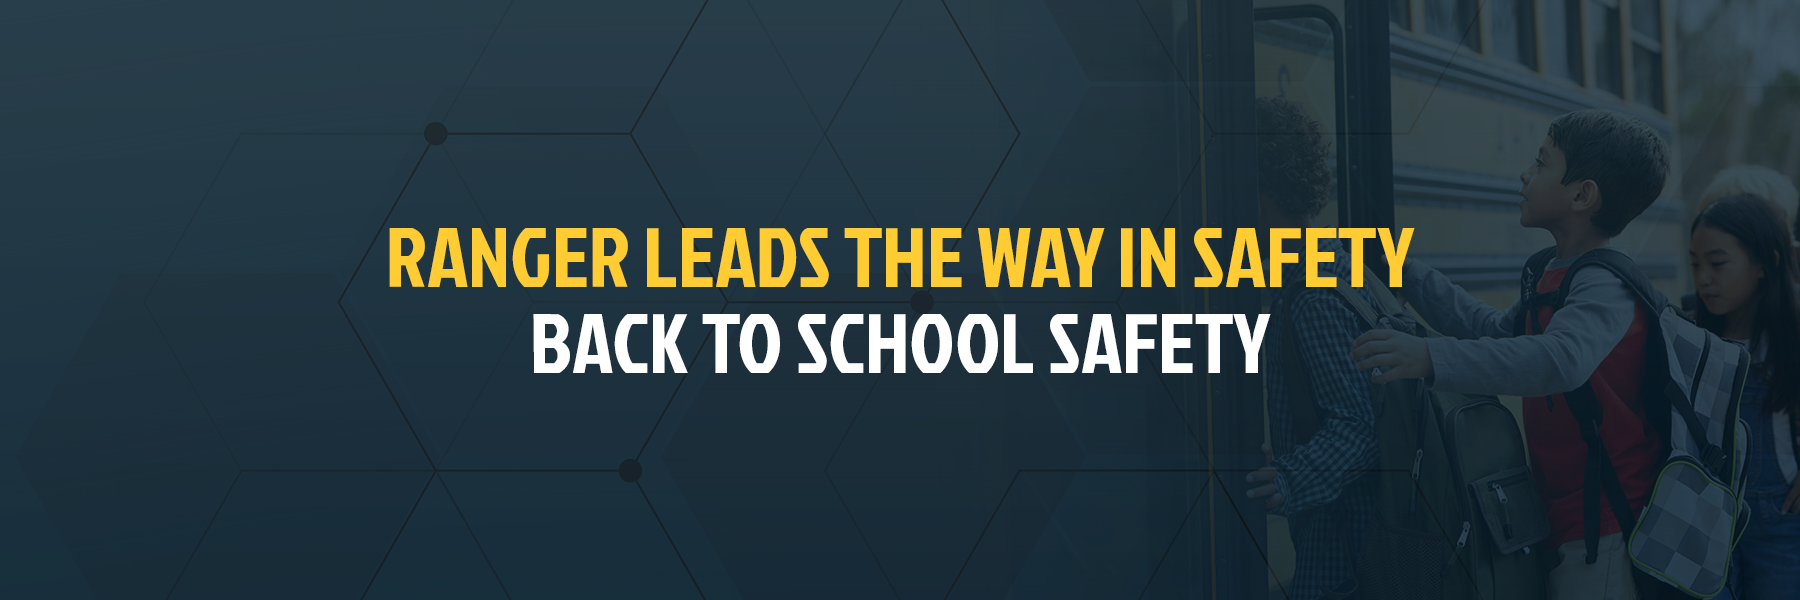 Ranger Leads the way in safety: back to school safety